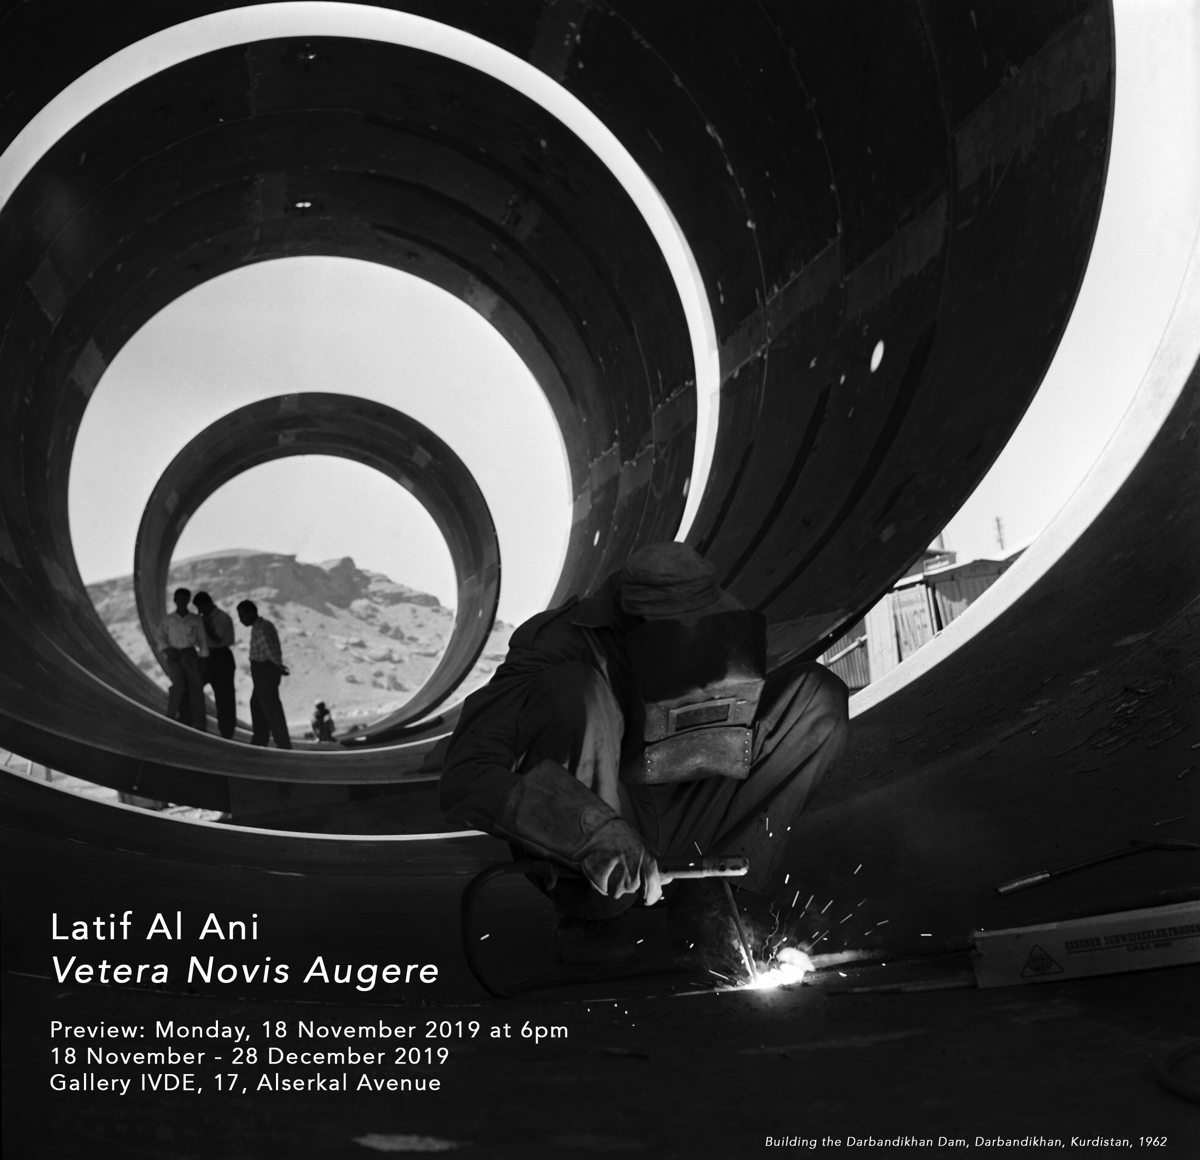 Vetera Novis Auguere, Latif Al Ani Exhibition Invite. Courtesy of Gallery Isabele van den Eynde